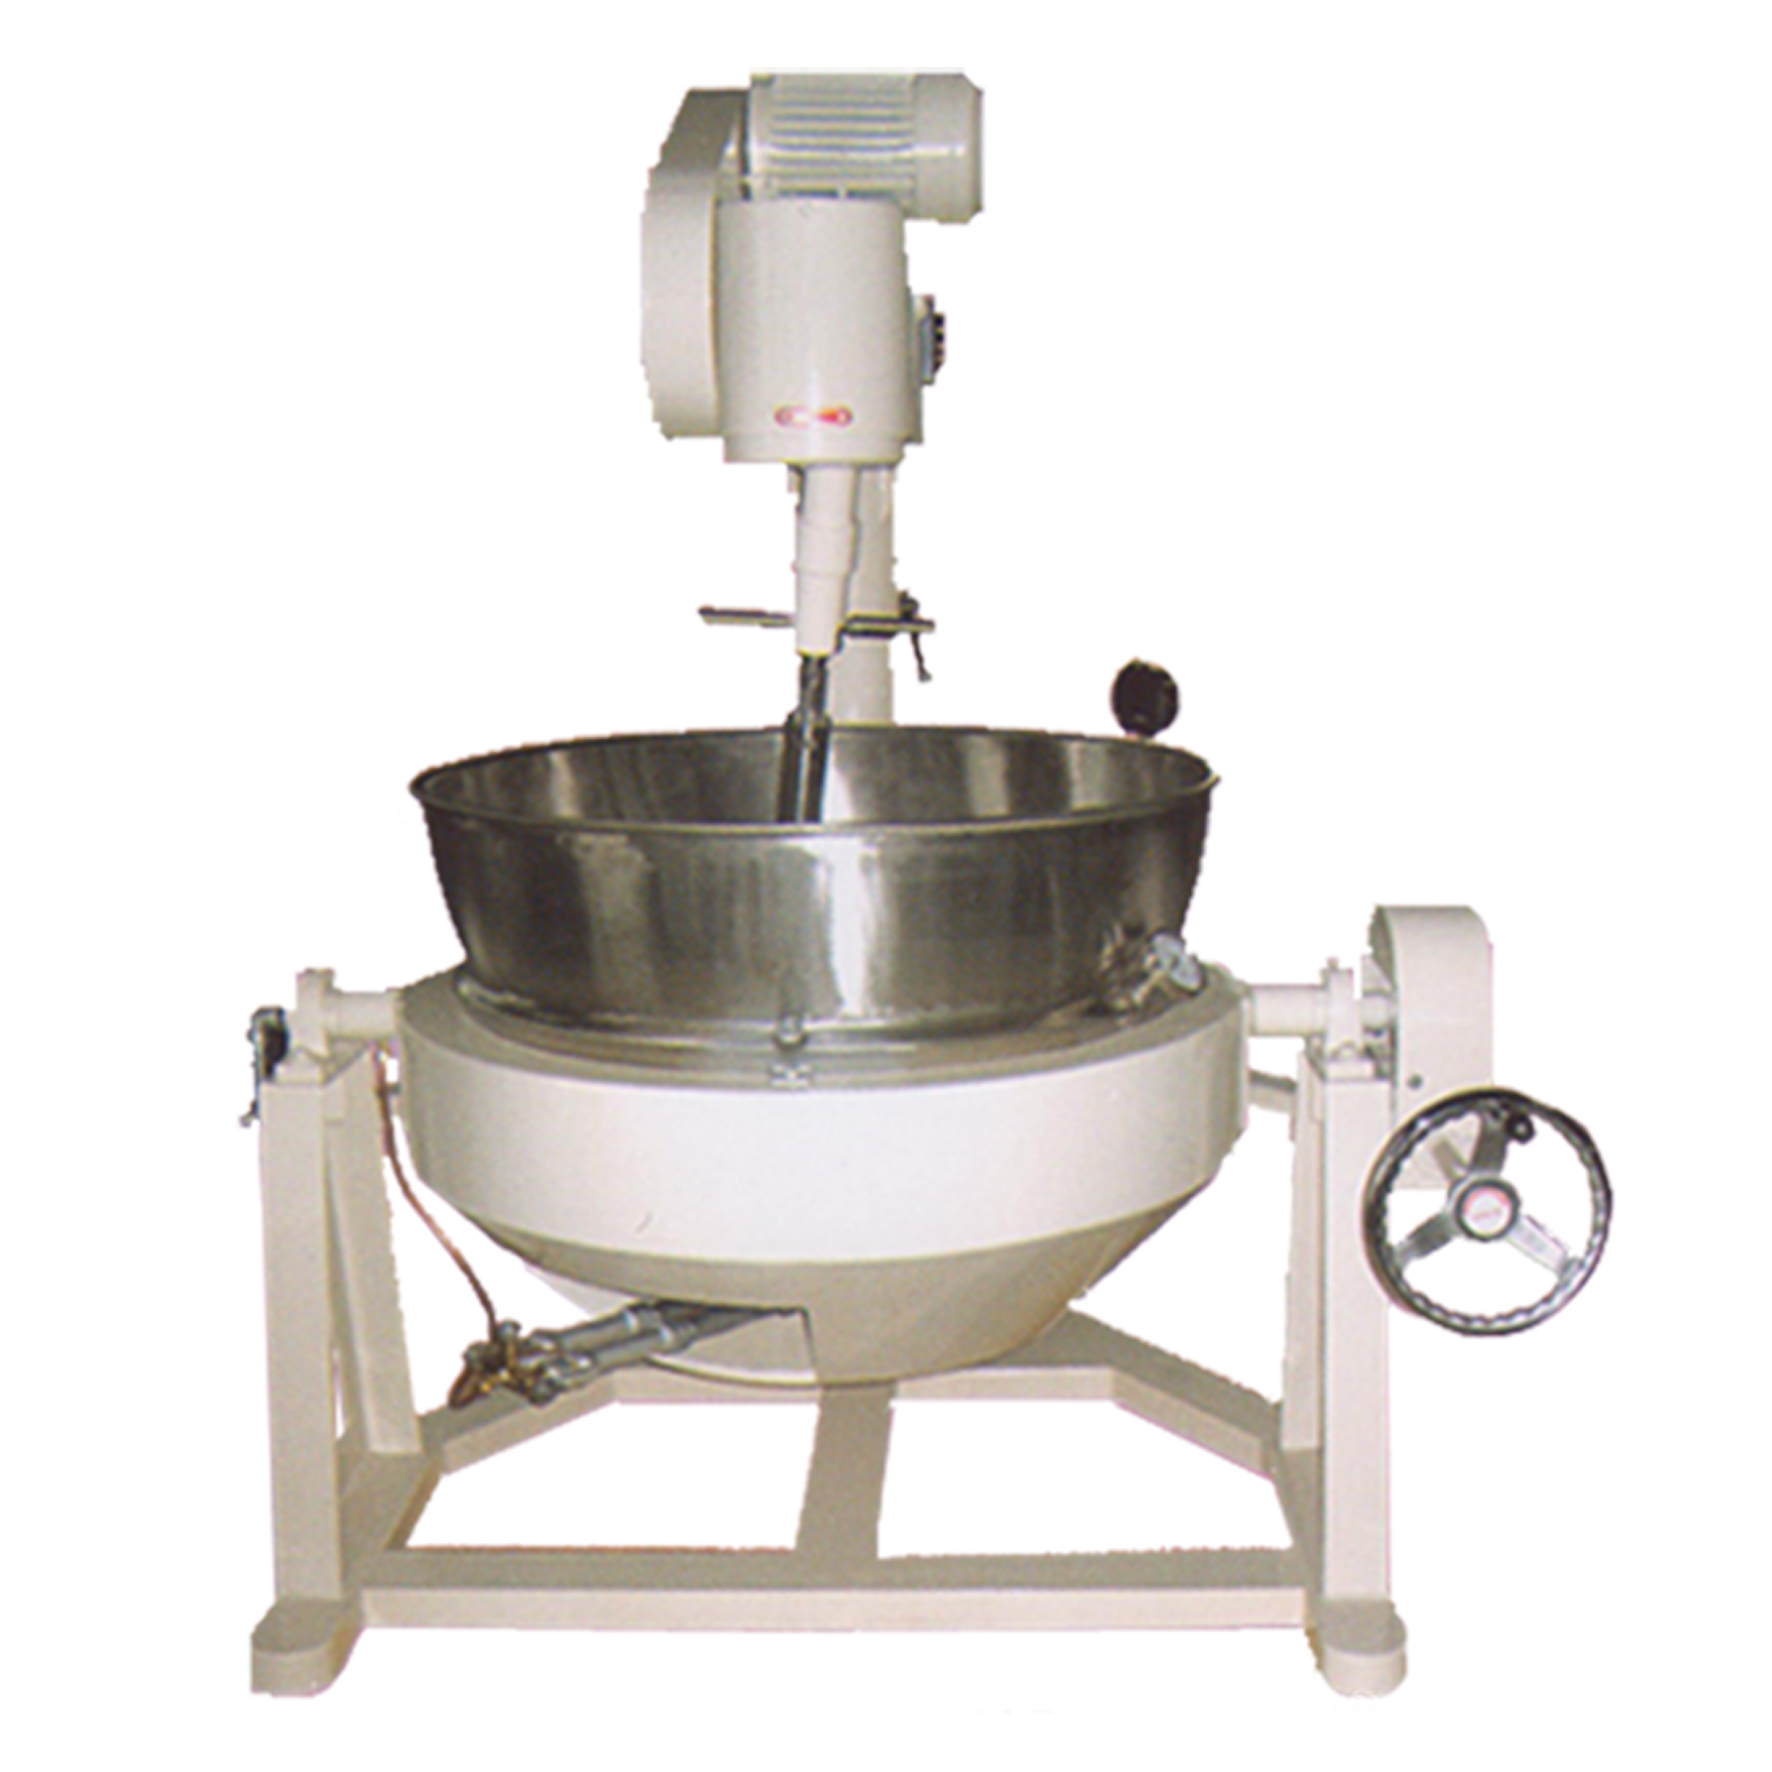 Cooking Mixer 2 Layer Bowl (Gas)